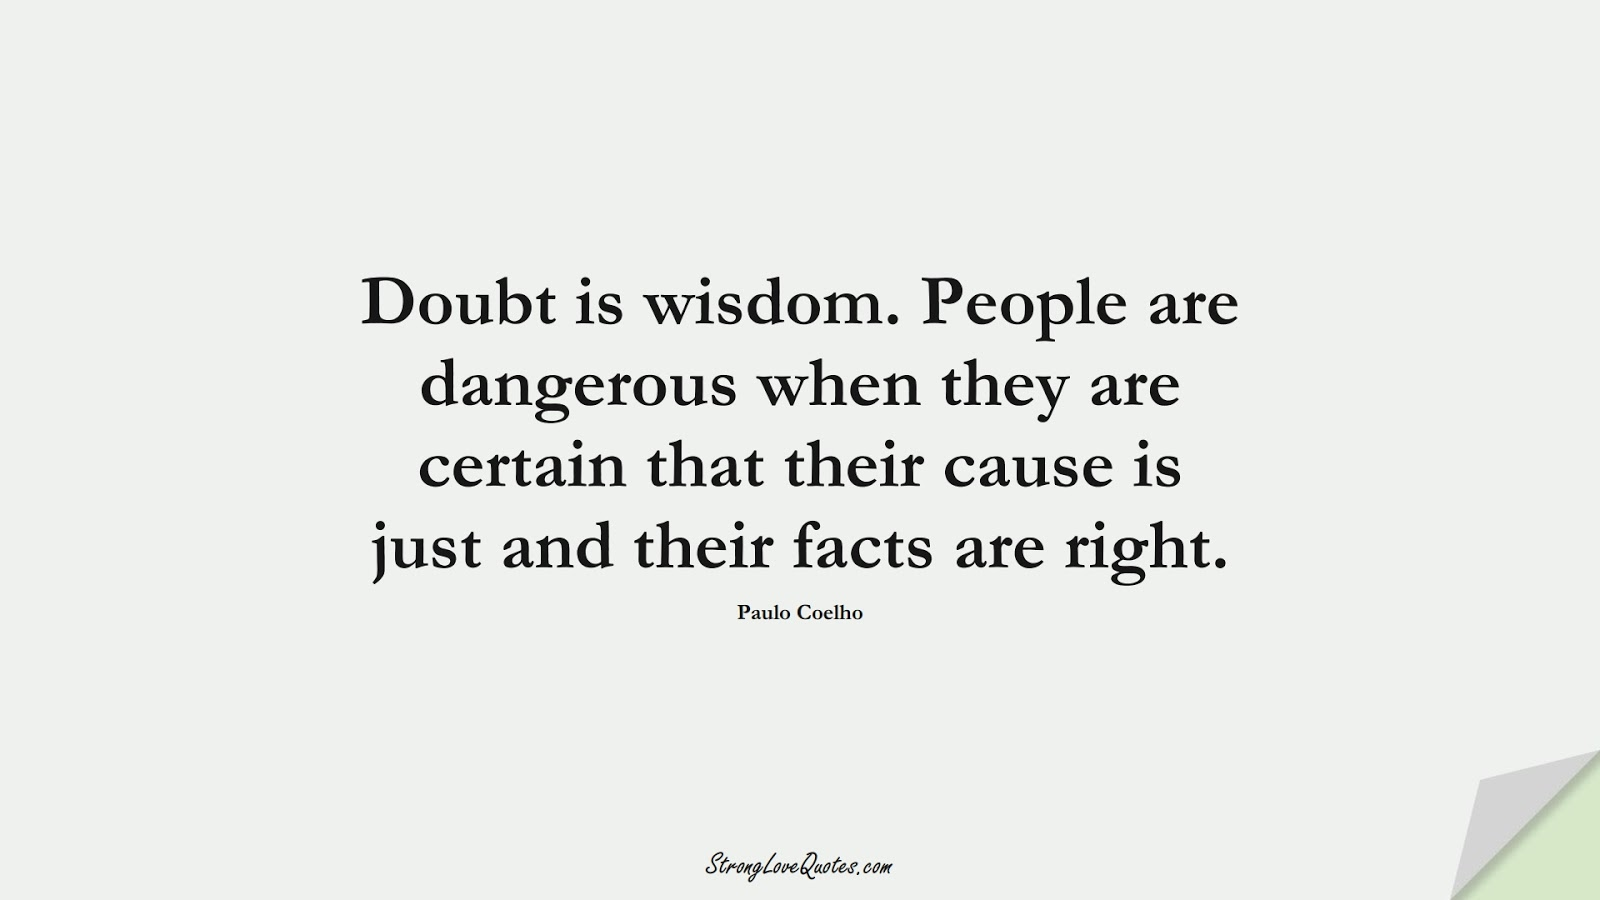 Doubt is wisdom. People are dangerous when they are certain that their cause is just and their facts are right. (Paulo Coelho);  #KnowledgeQuotes